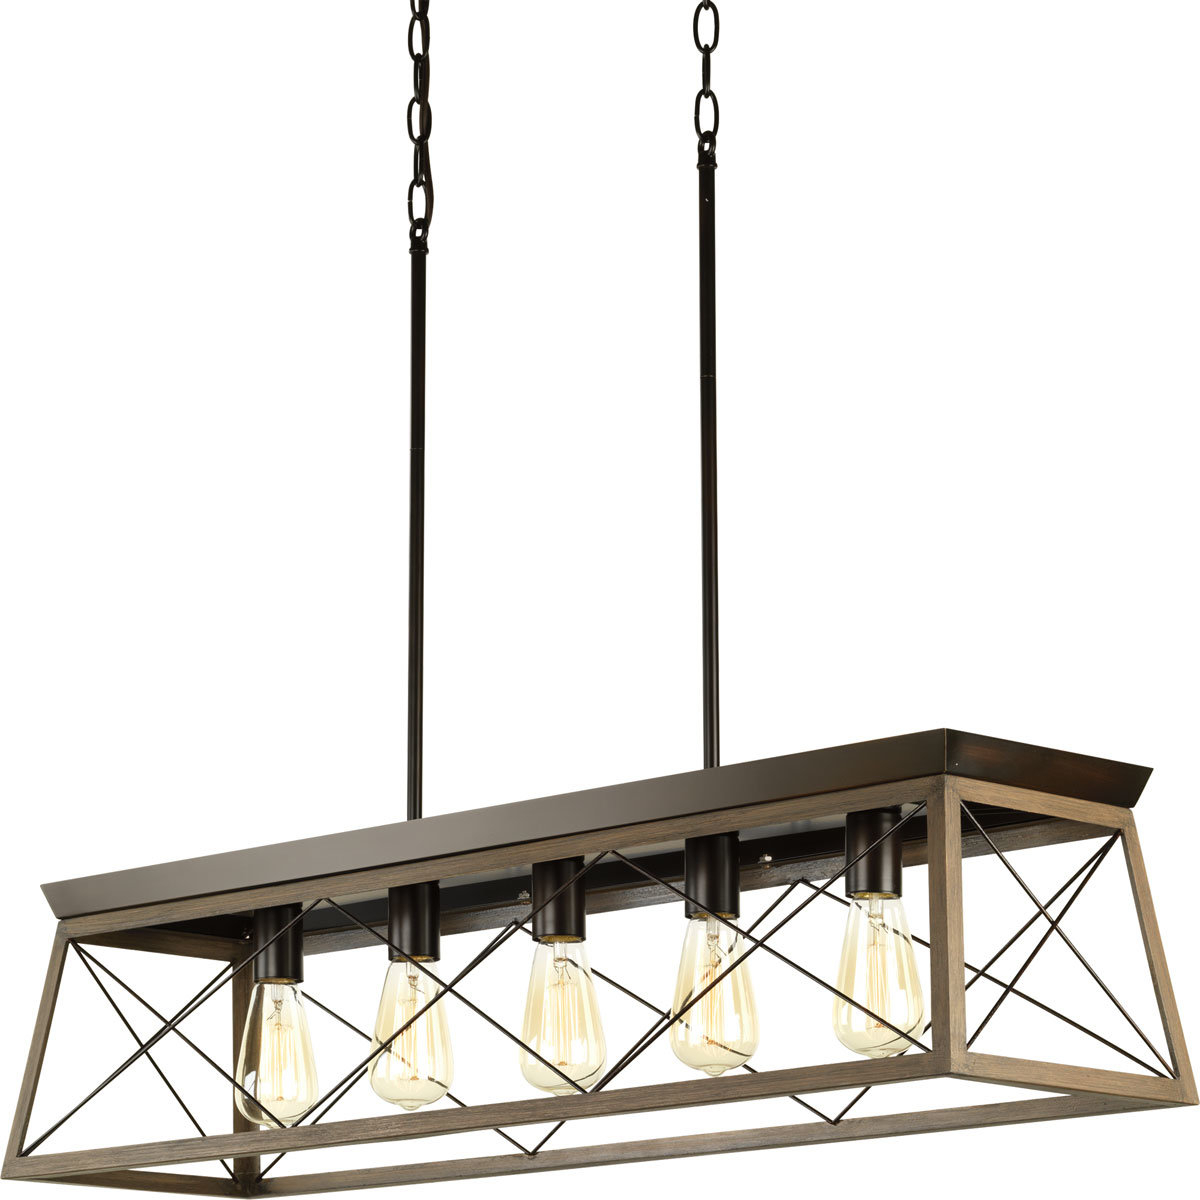 Delon 5-Light Kitchen Island Linear Pendant intended for Famous Delon 1-Light Lantern Geometric Pendants